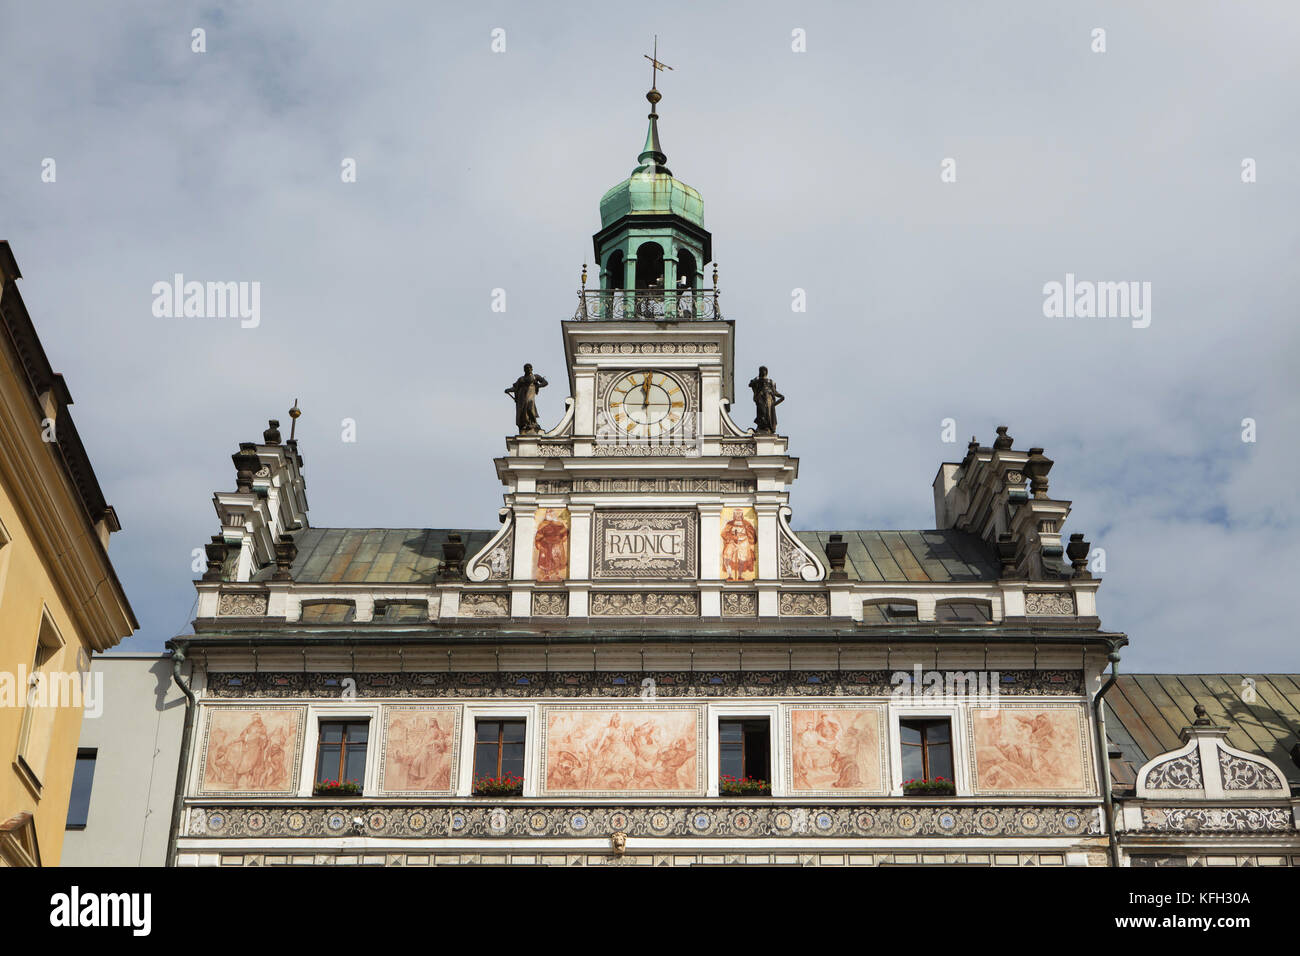 Neo-Renaissance town hall in Karlovo Square in Kolín in Central Bohemia, Czech Republic. The building designed - Stock Image